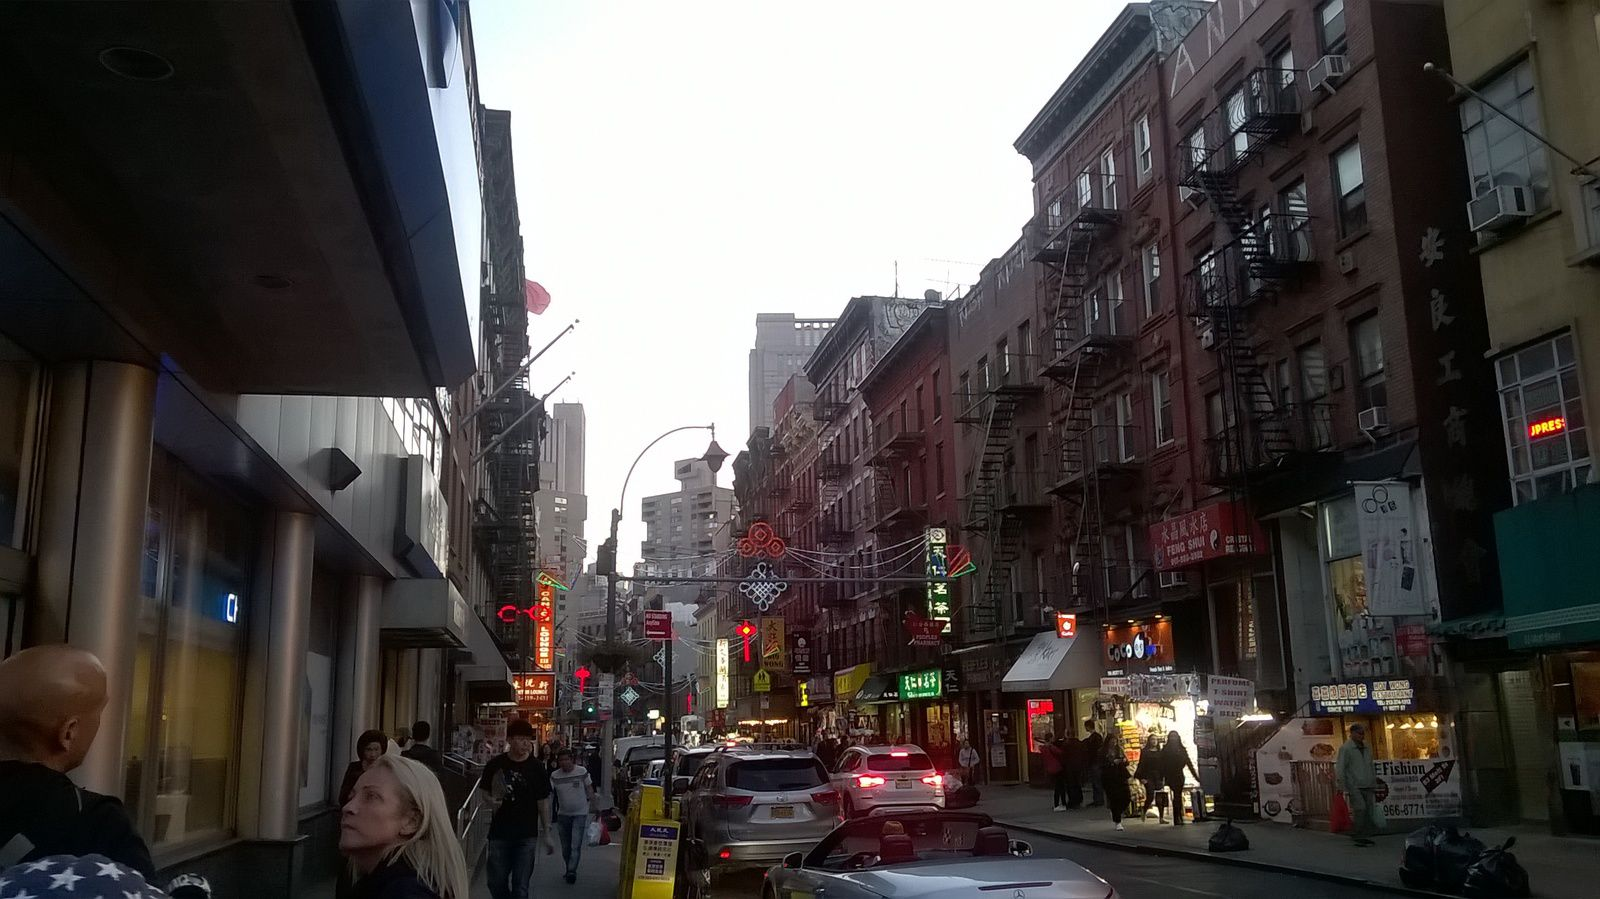 Le quartier chinois de Manhattan.